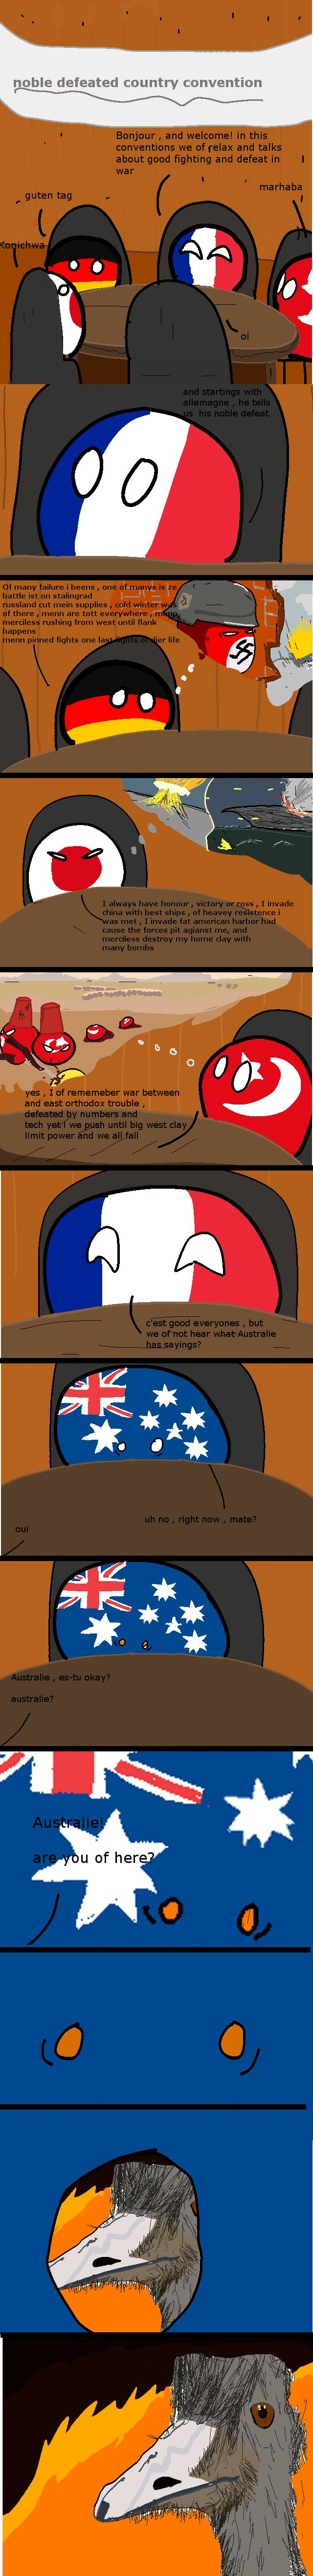 the epic defeat relaxation convention ( France, Germany, Japan, Turkey, Australia ) by bluegad6  #polandball #countryball #flagball